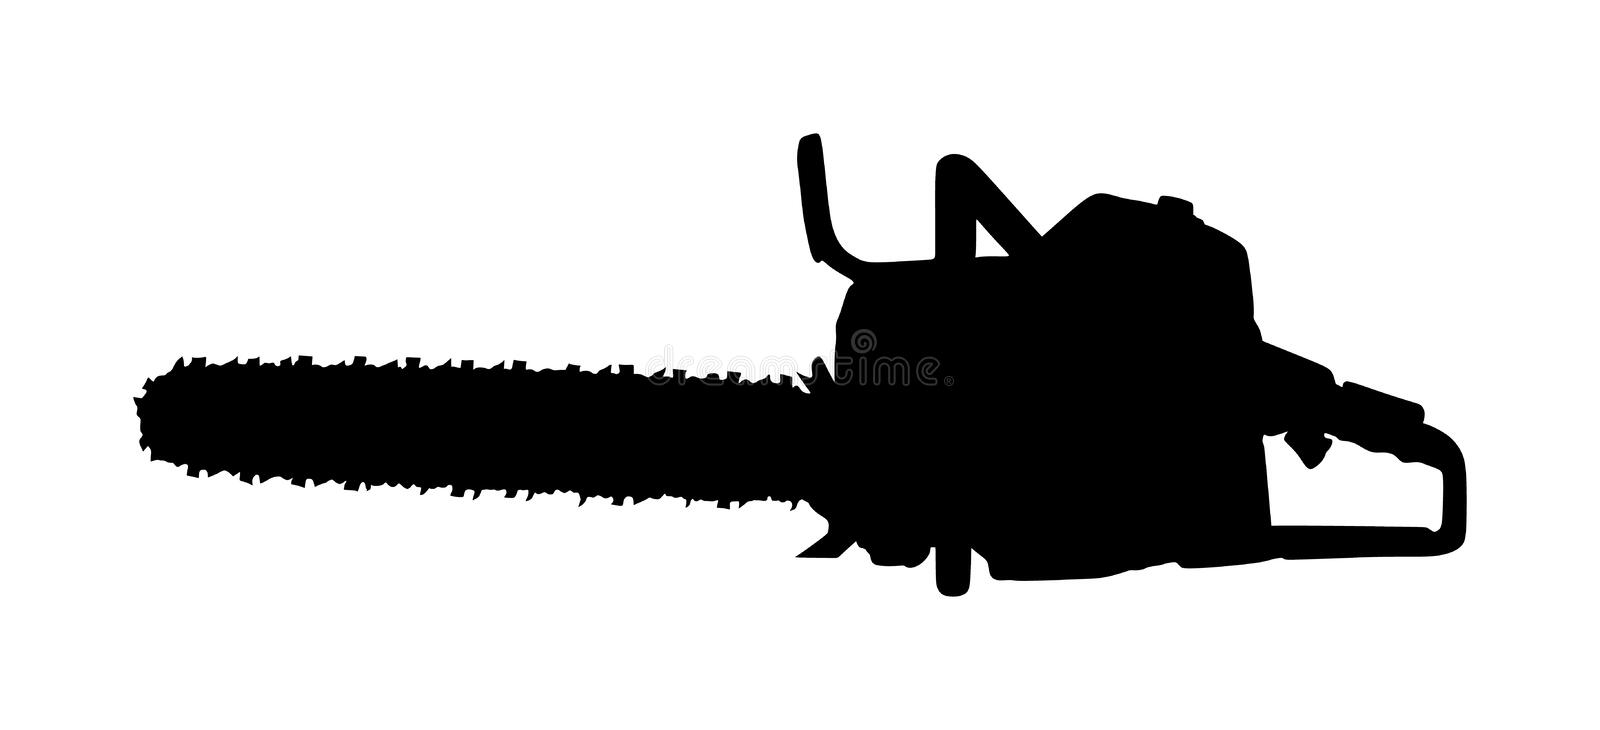 Chainsaw vector silhouette illustration isolated on white background. Hard industry job equipment. vector illustration